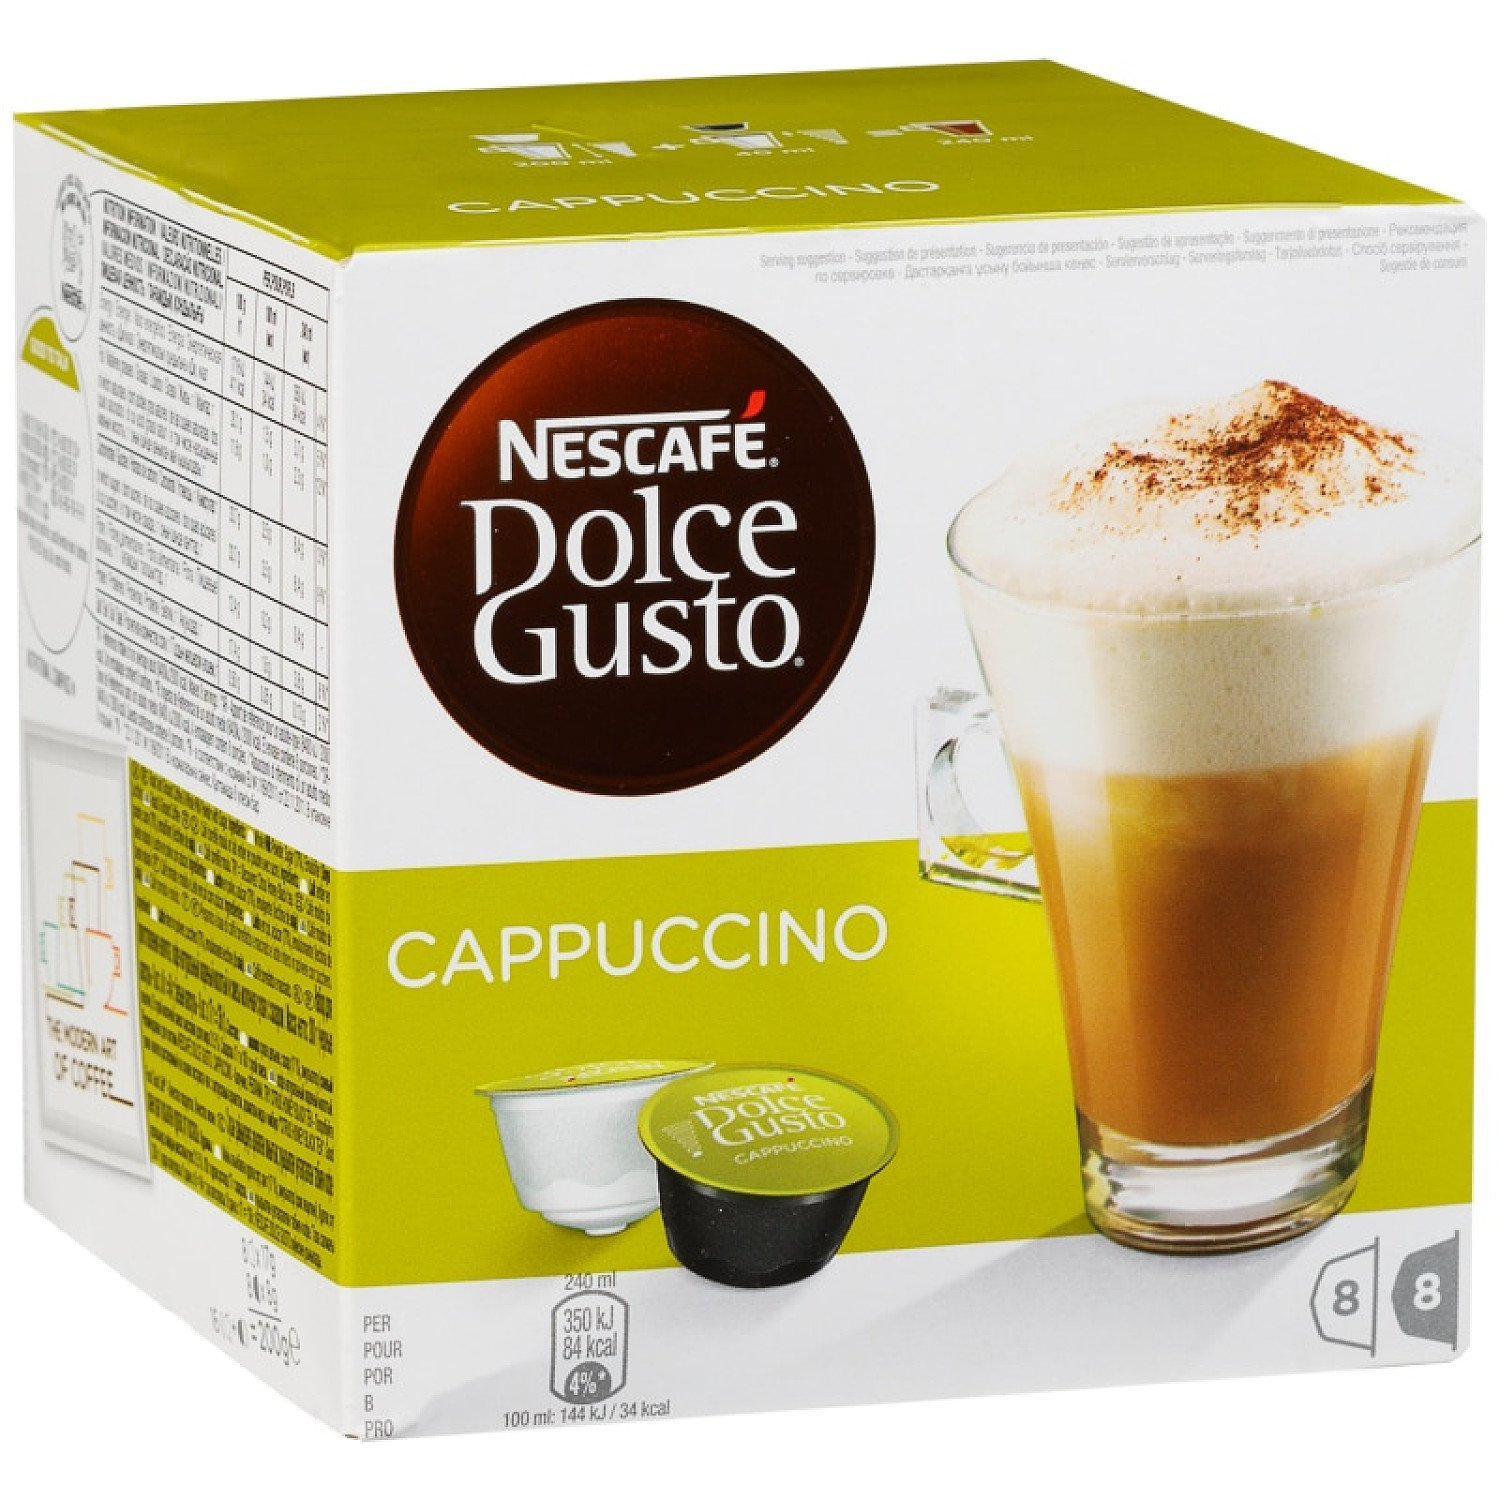 WE'RE OPEN, COME IN STORE - Nescafe Dolce Gusto Cappuccino 8pk £3.59!